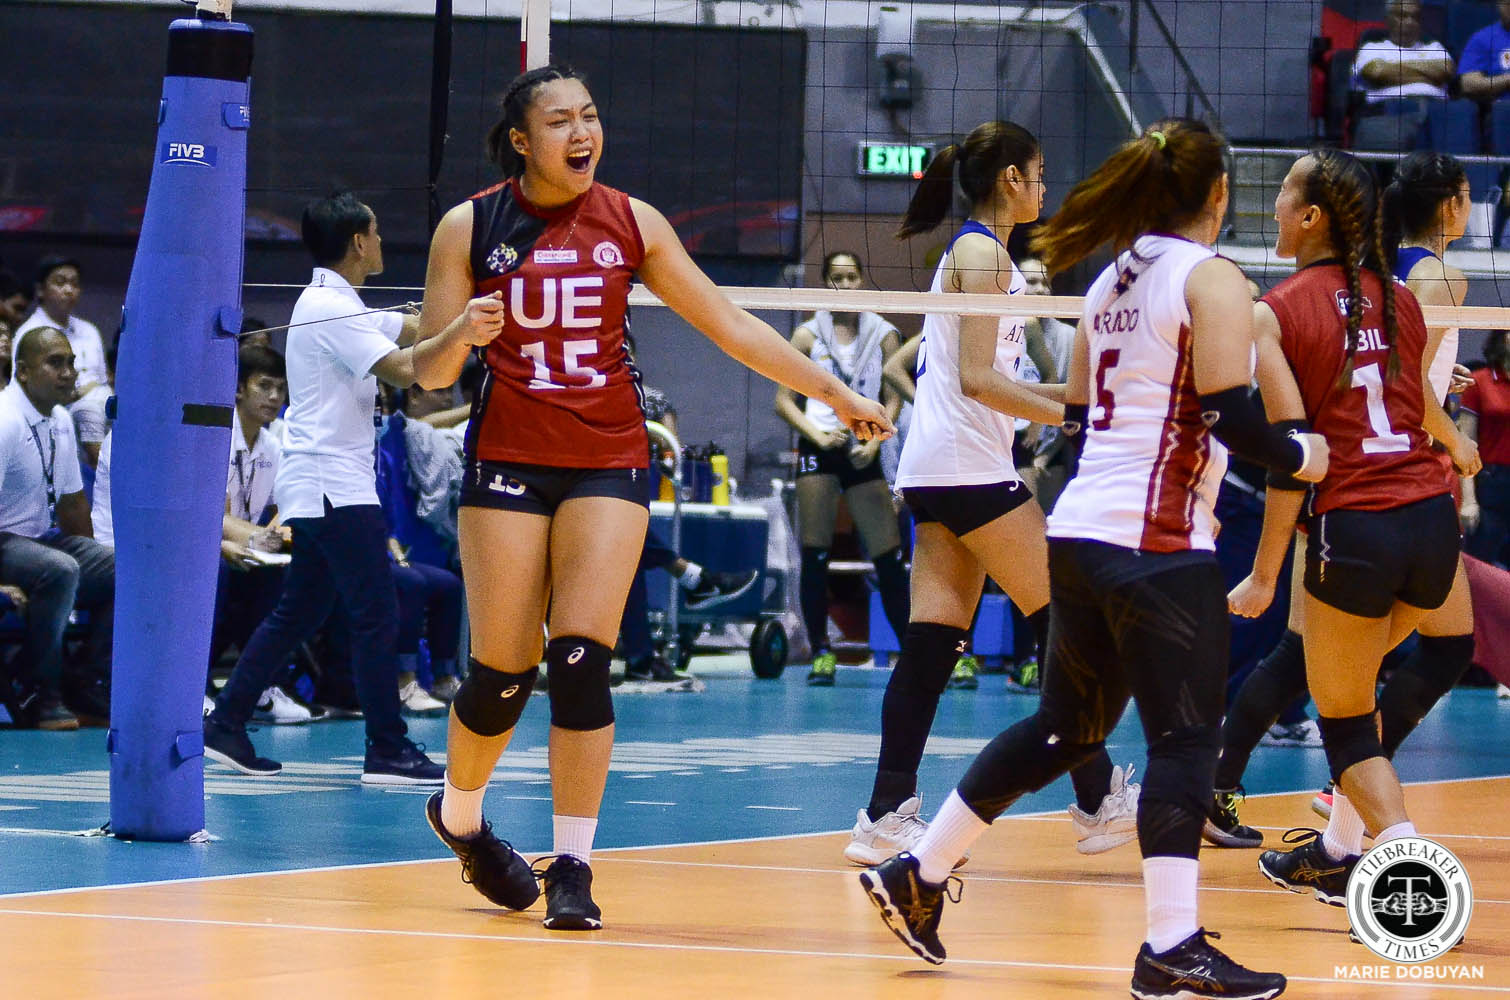 Tiebreaker Times Me-Anne Mendrez chooses to see bright side of getting tonsillitis News UAAP UE Volleyball  UE Women's Volleyball UAAP Season 81 Women's Volleyball UAAP Season 81 Me-Anne Mendrez Jasmine Alcayde